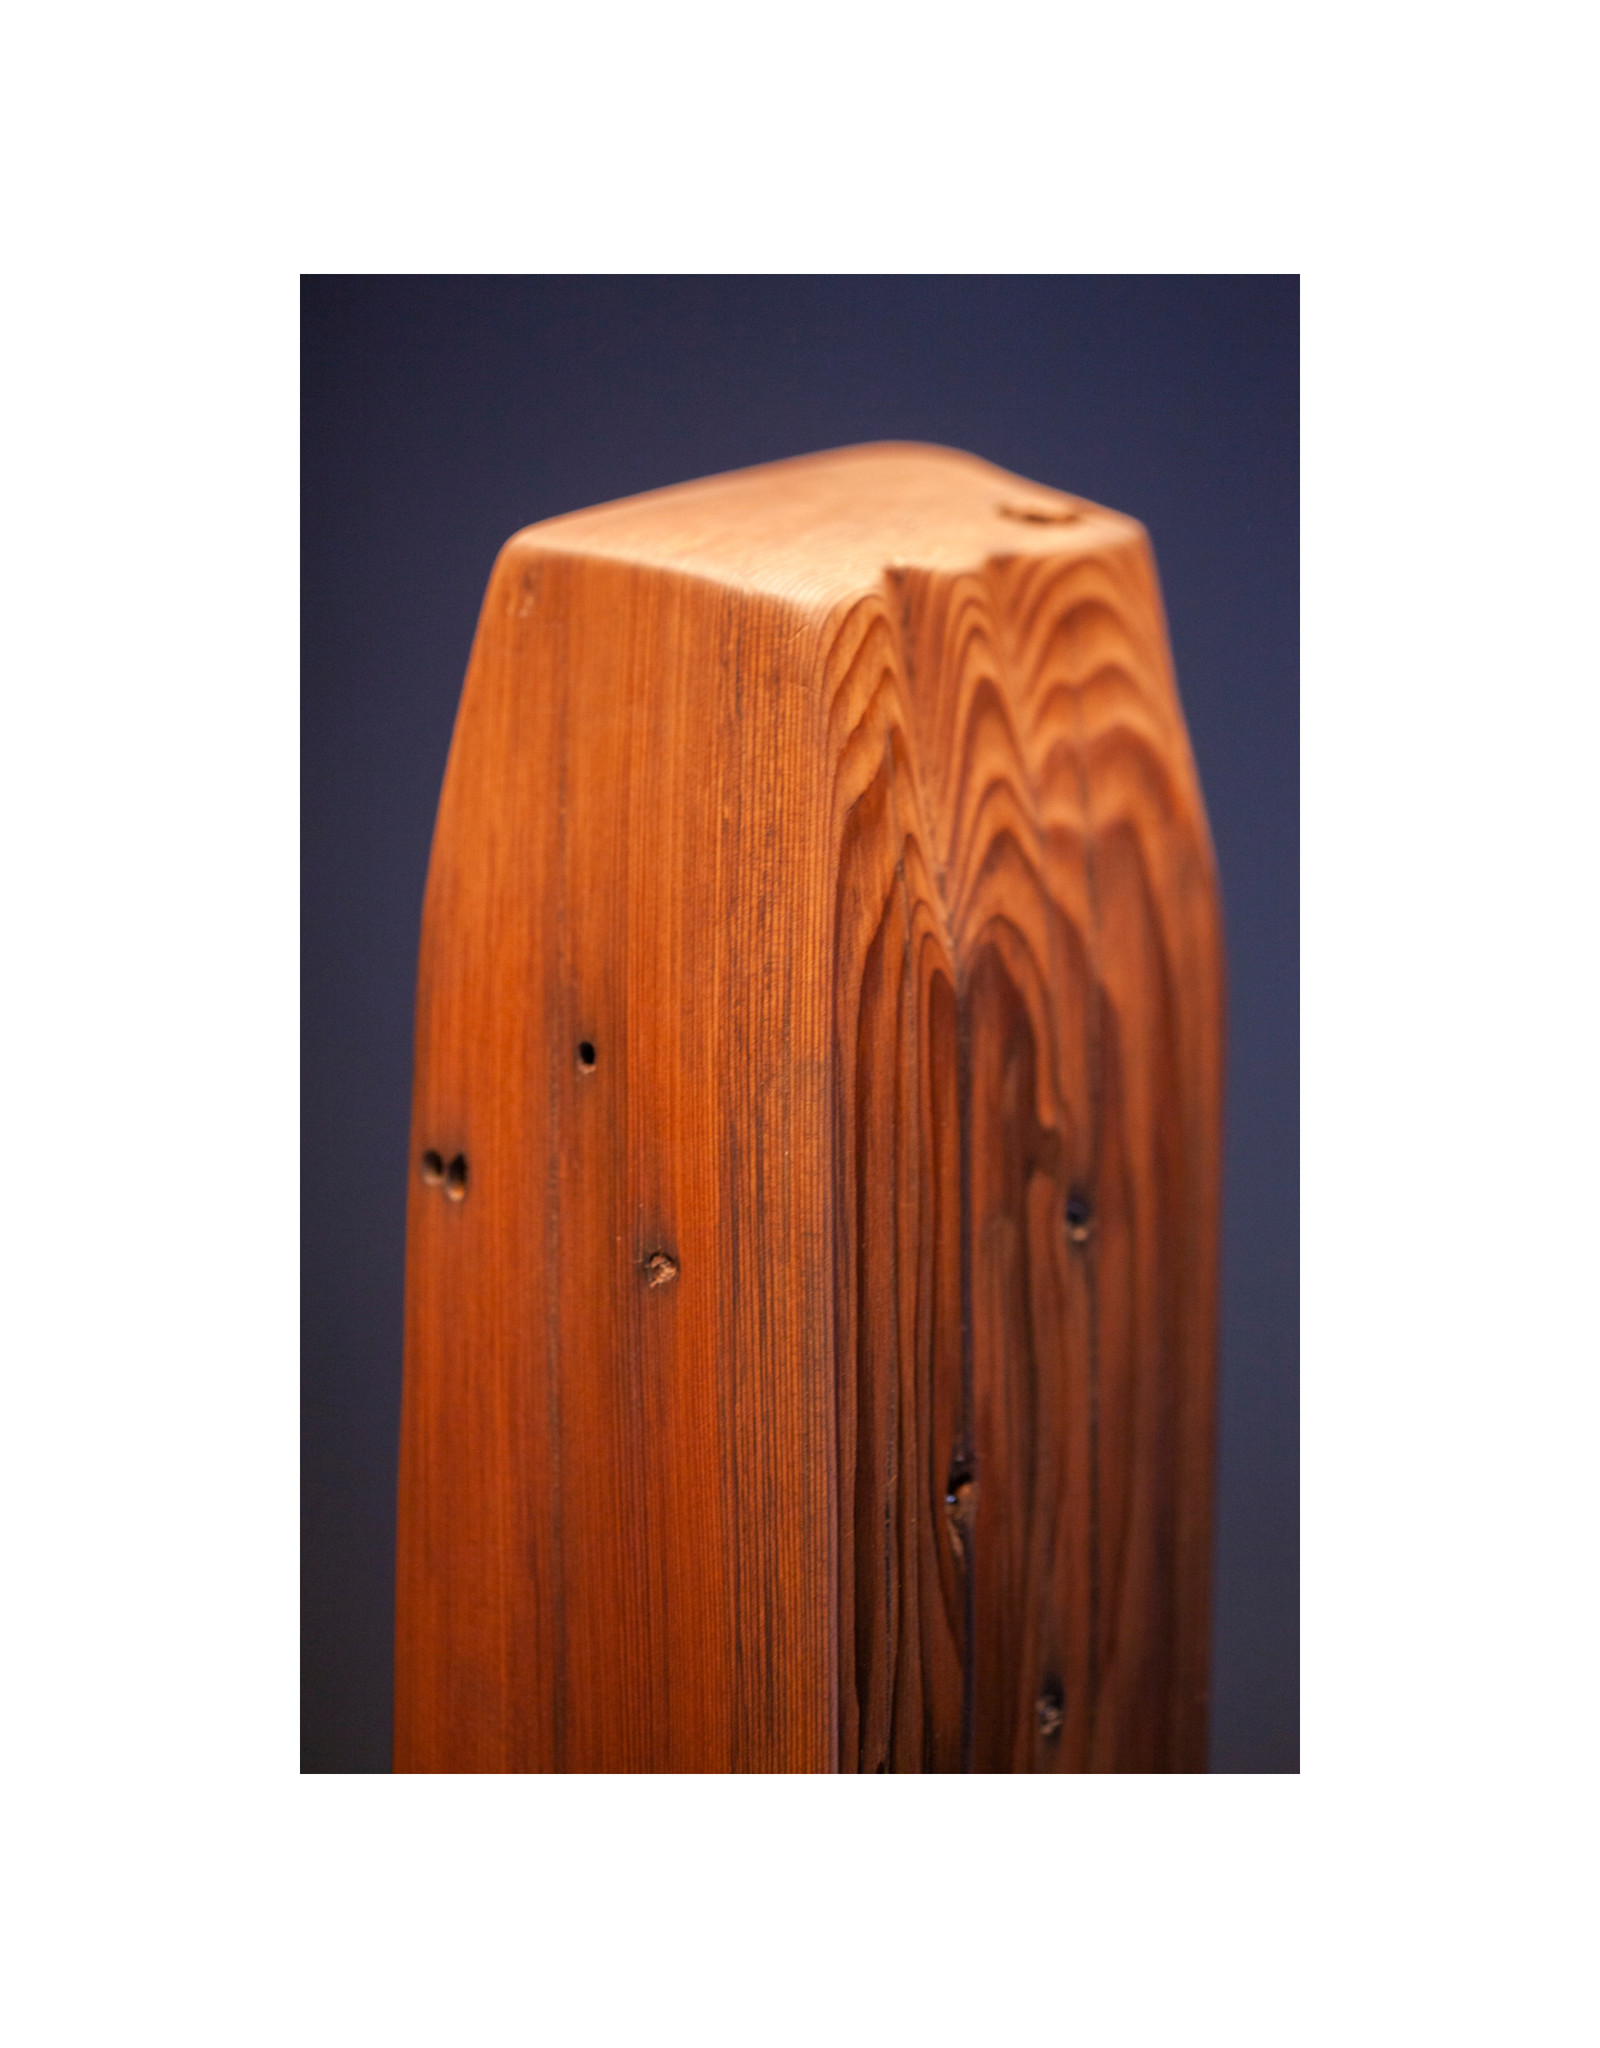 Ceremonial Redwood - No. 2